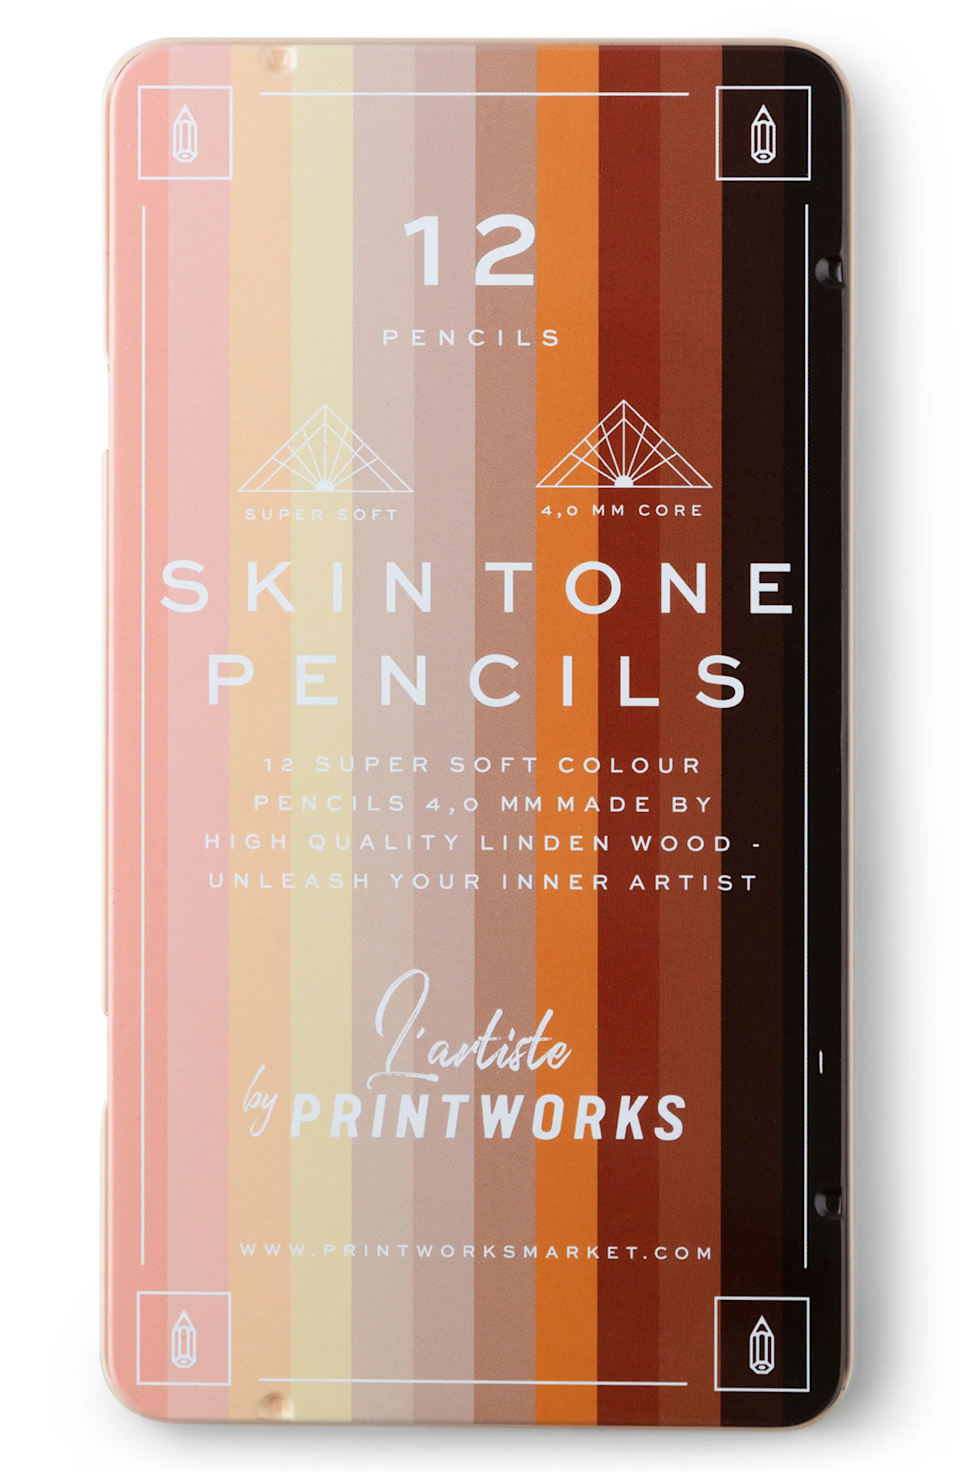 """For the art inclined sibling, this skin-tone colored pencil set will rank high on his list as the best present ever. <br><br><strong>Printworks</strong> 12-Piece Skin Tone Color Pencil Set, $, available at <a href=""""https://go.skimresources.com/?id=30283X879131&url=https%3A%2F%2Fwww.nordstrom.com%2Fs%2Fprintworks-12-piece-skin-tone-color-pencil-set%2F5742462%3Forigin%3Dcategory-personalizedsort%26breadcrumb%3DHome%252FHoliday%2520Gifts%252FGifts%2520for%2520Him%26color%3Dmulti"""" rel=""""nofollow noopener"""" target=""""_blank"""" data-ylk=""""slk:Nordstrom"""" class=""""link rapid-noclick-resp"""">Nordstrom</a>"""